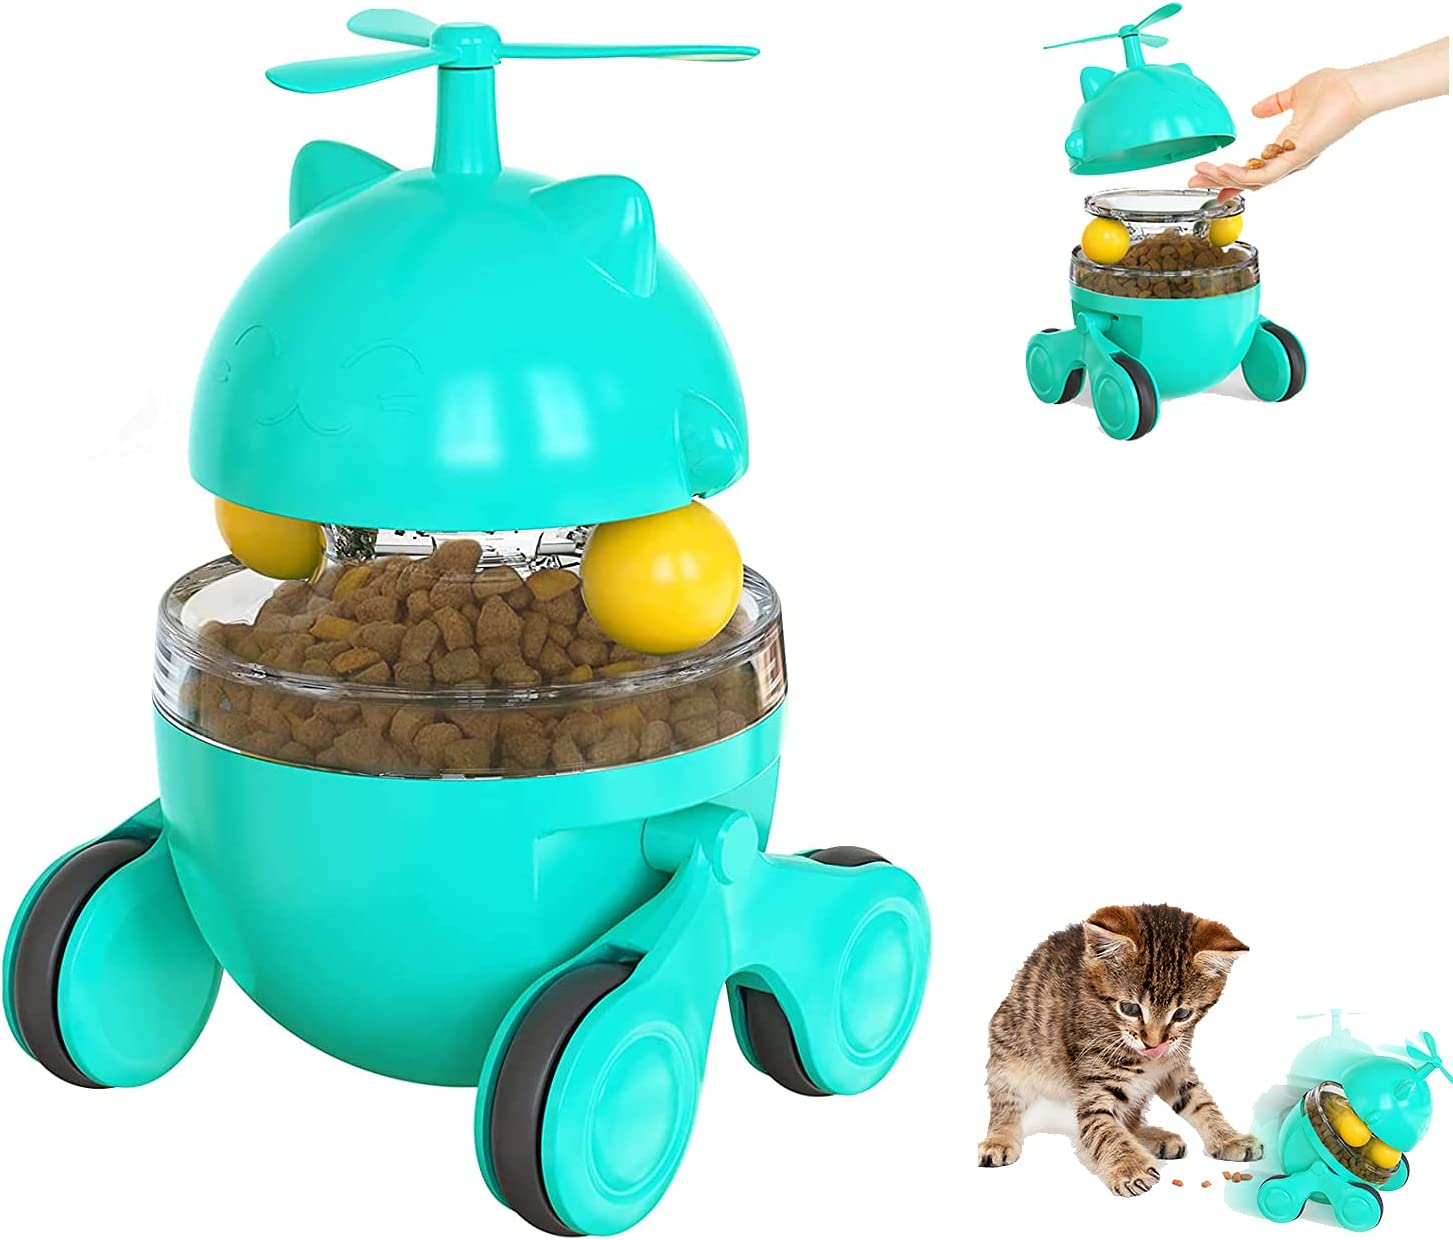 Cat Food Dispenser Treat Toys, Kitten Feeder Toys, Funny Tumbler Style, Cat Toys for Indoor, IQ Traning Interactive Treat Toy with Dual Rolling Balls and Propeller, for Cat Self-Play (Blue)